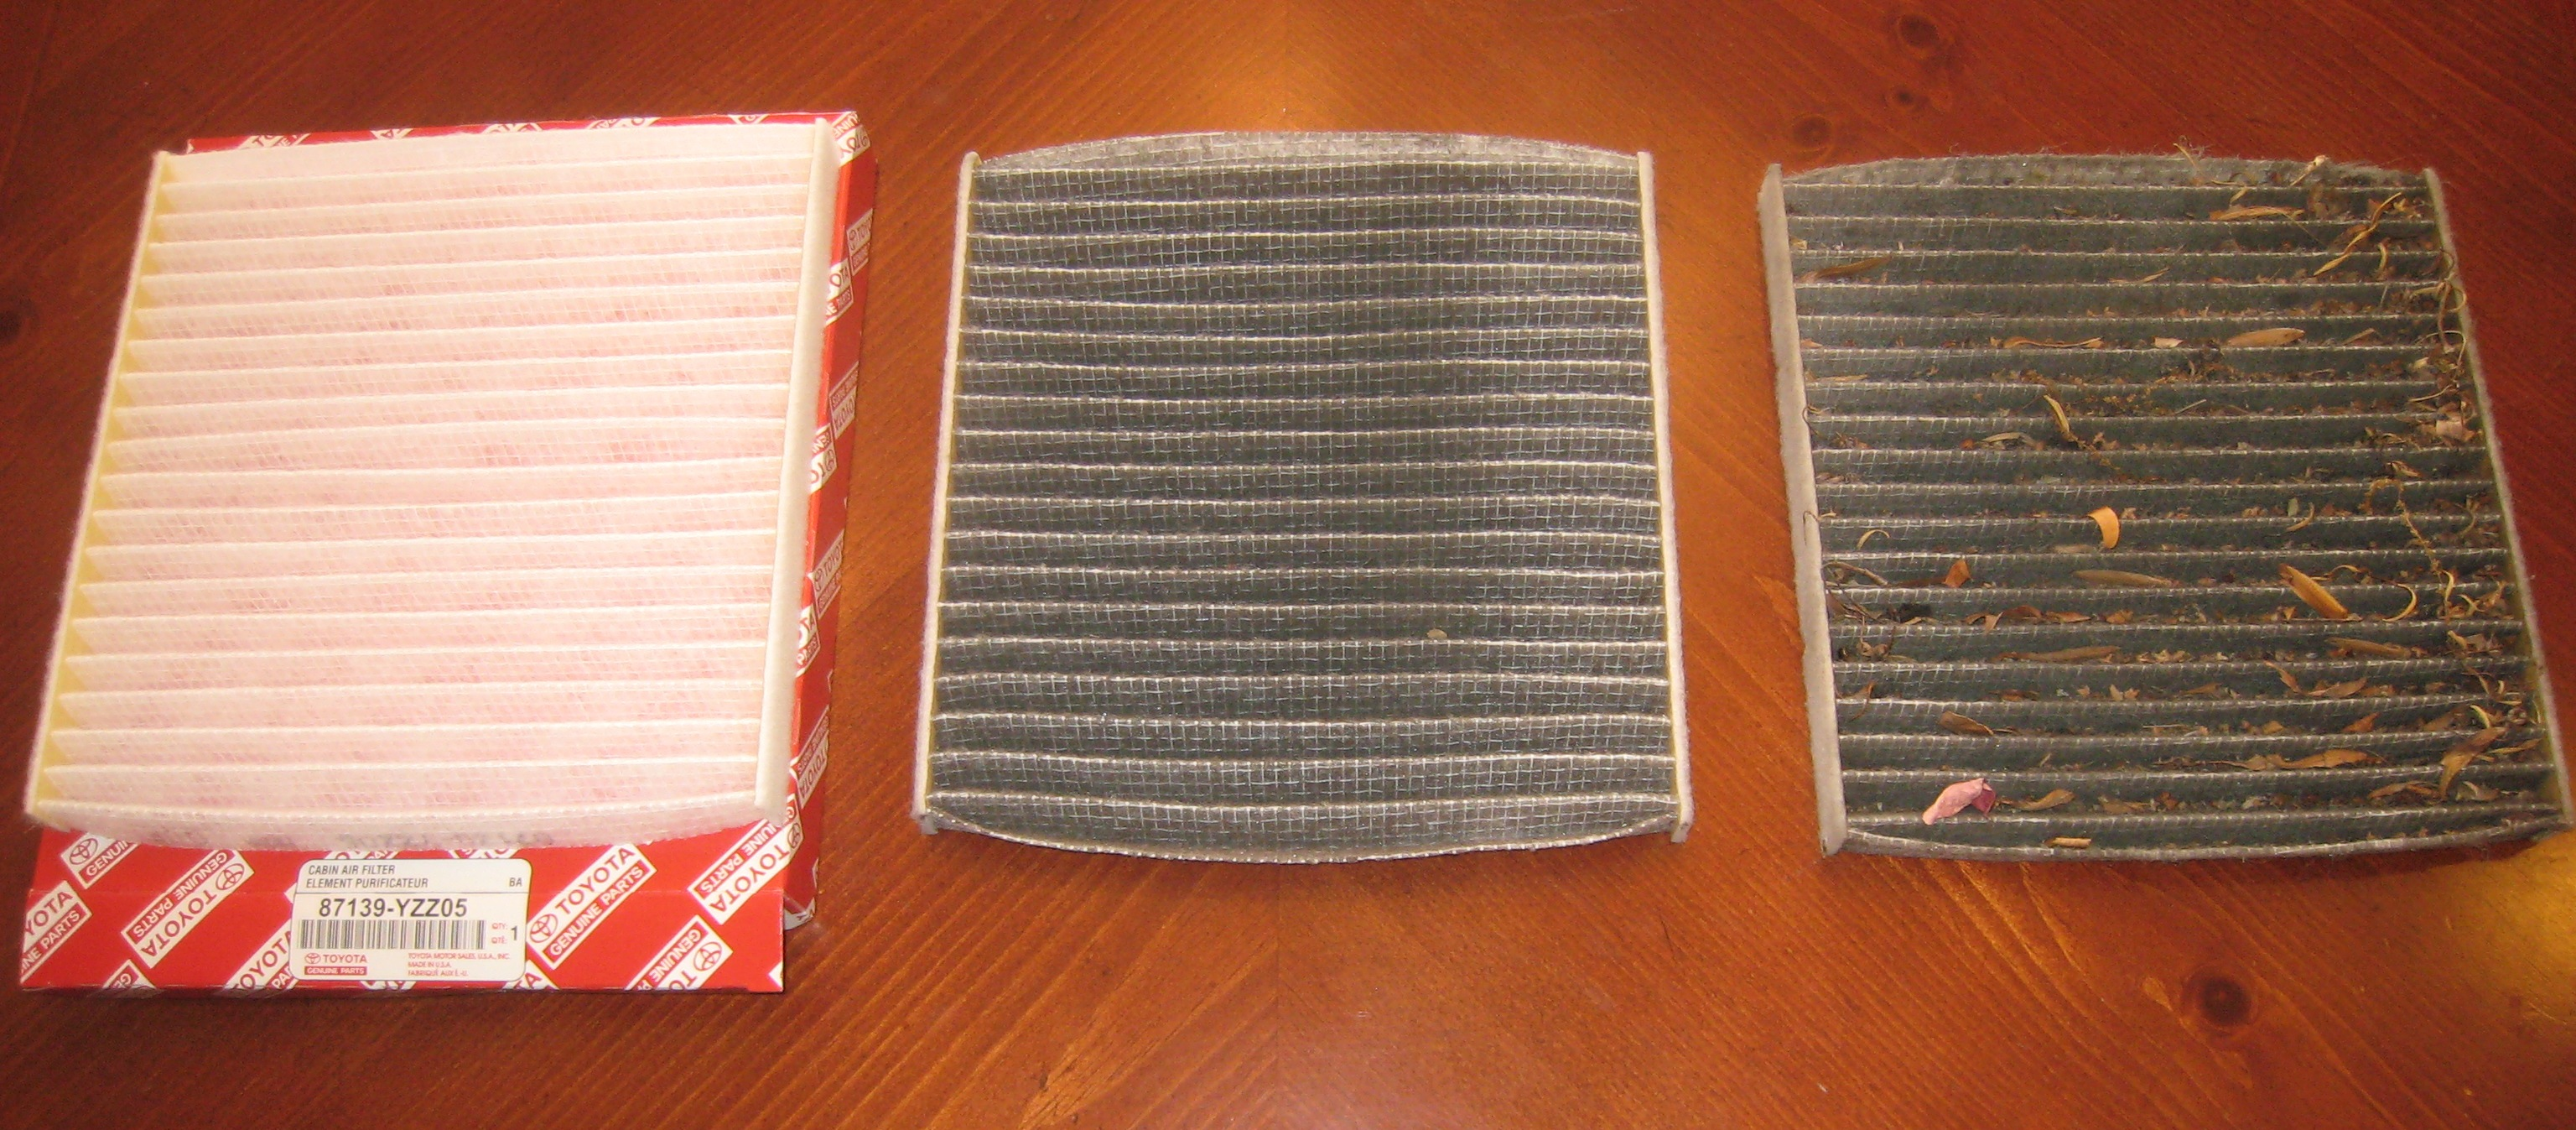 sienna cabin toyota conditioning filter mahle parts air particulate cabins heating